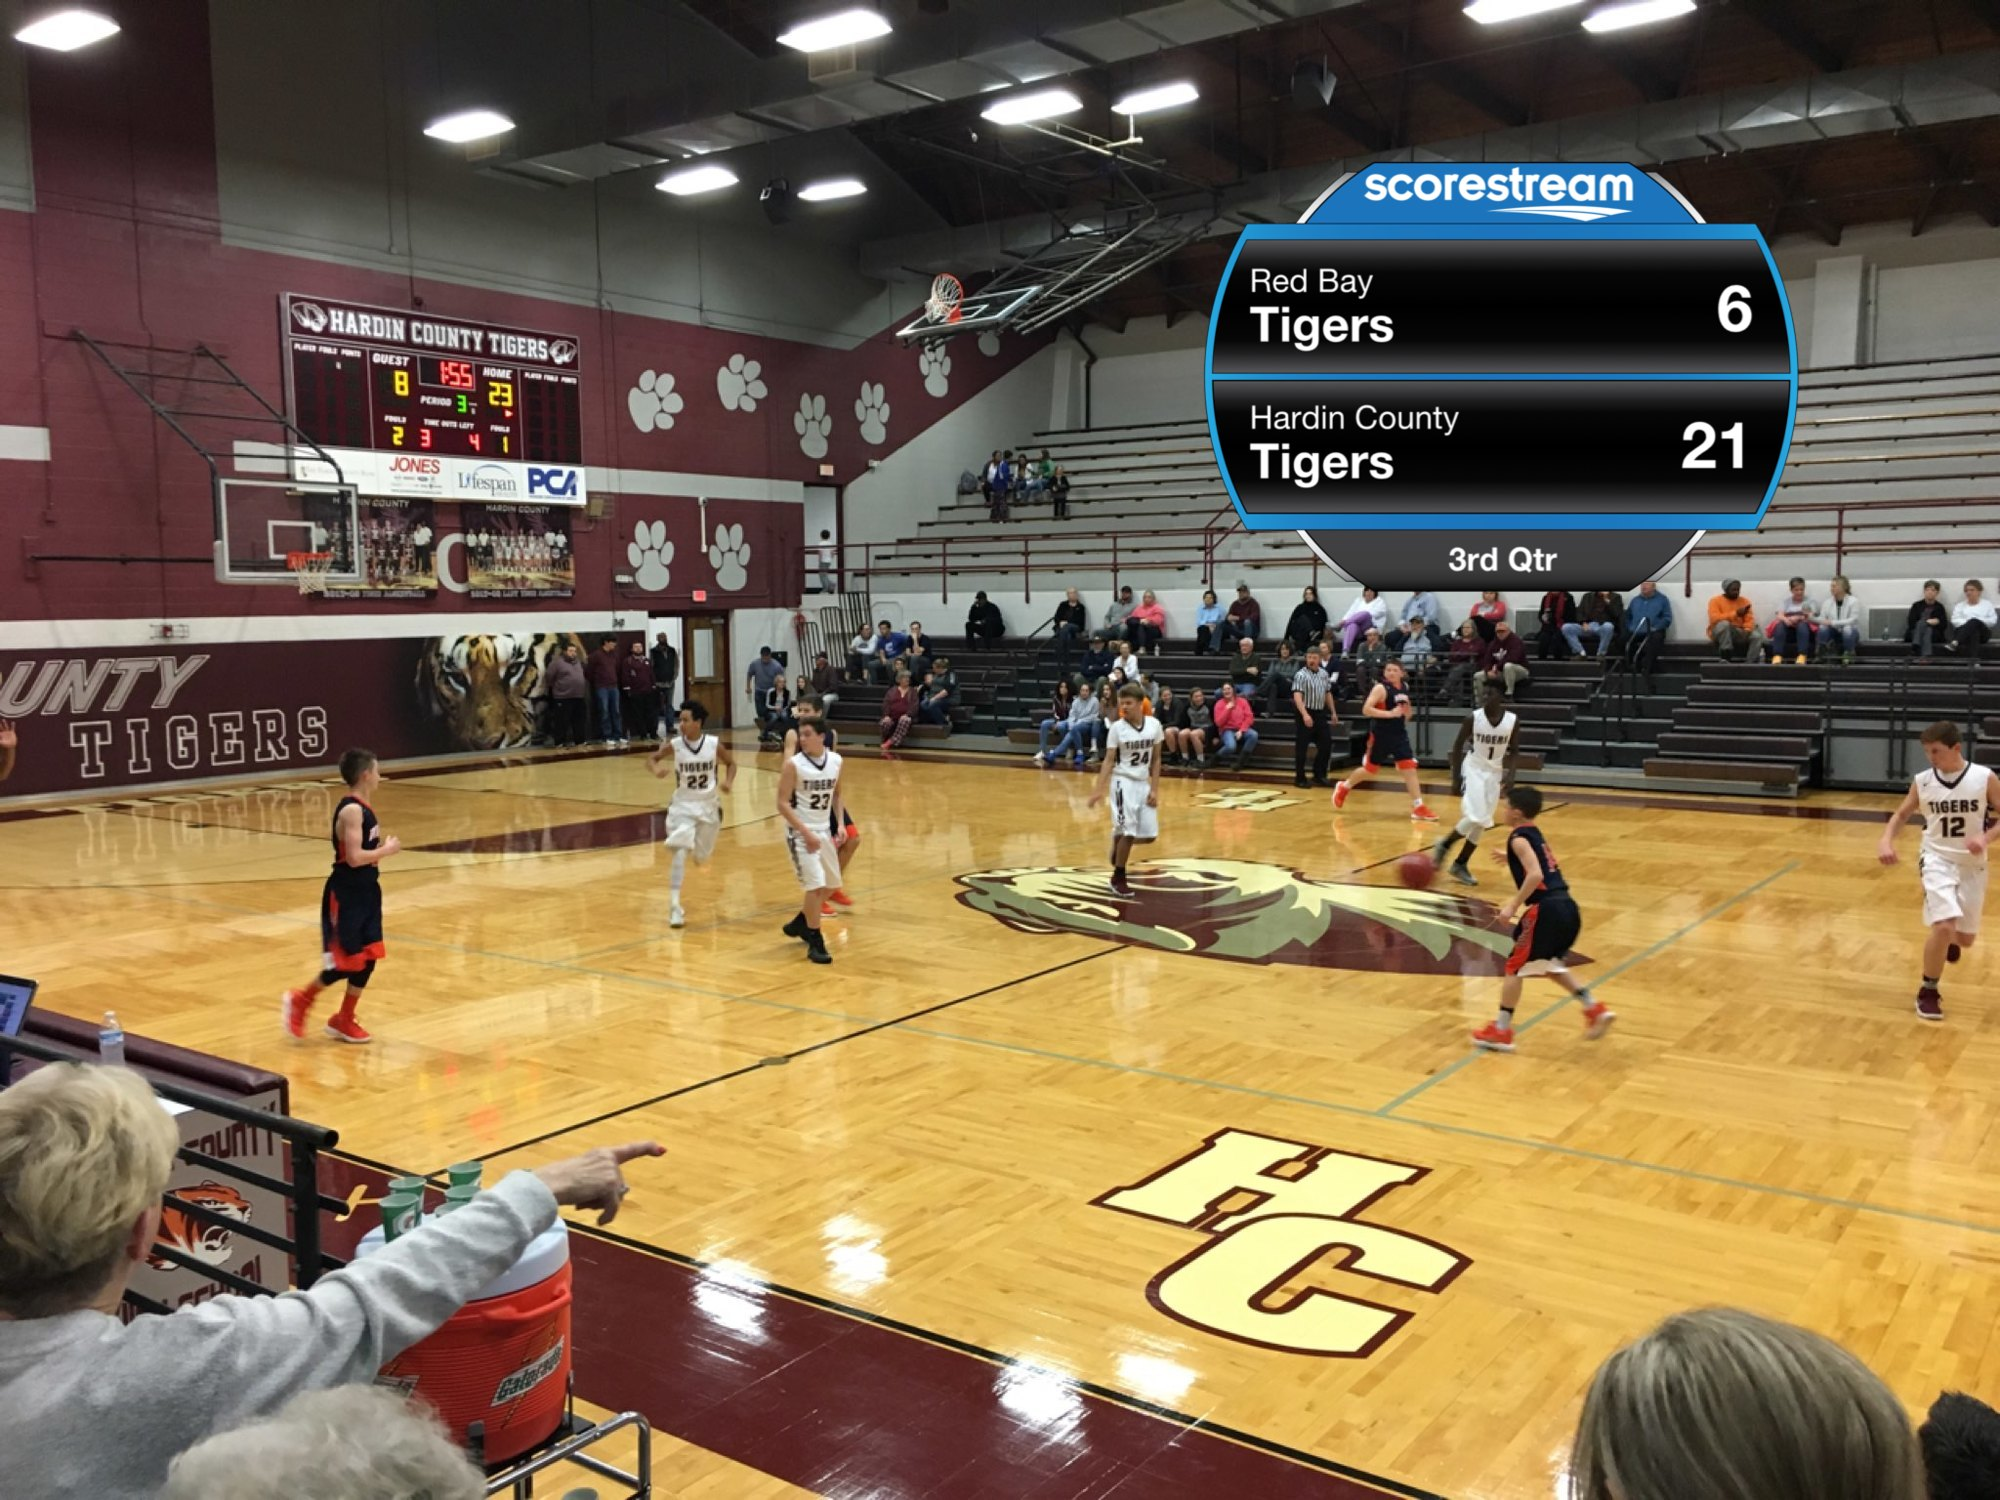 The Red Bay Tigers vs  the Hardin County Tigers - ScoreStream